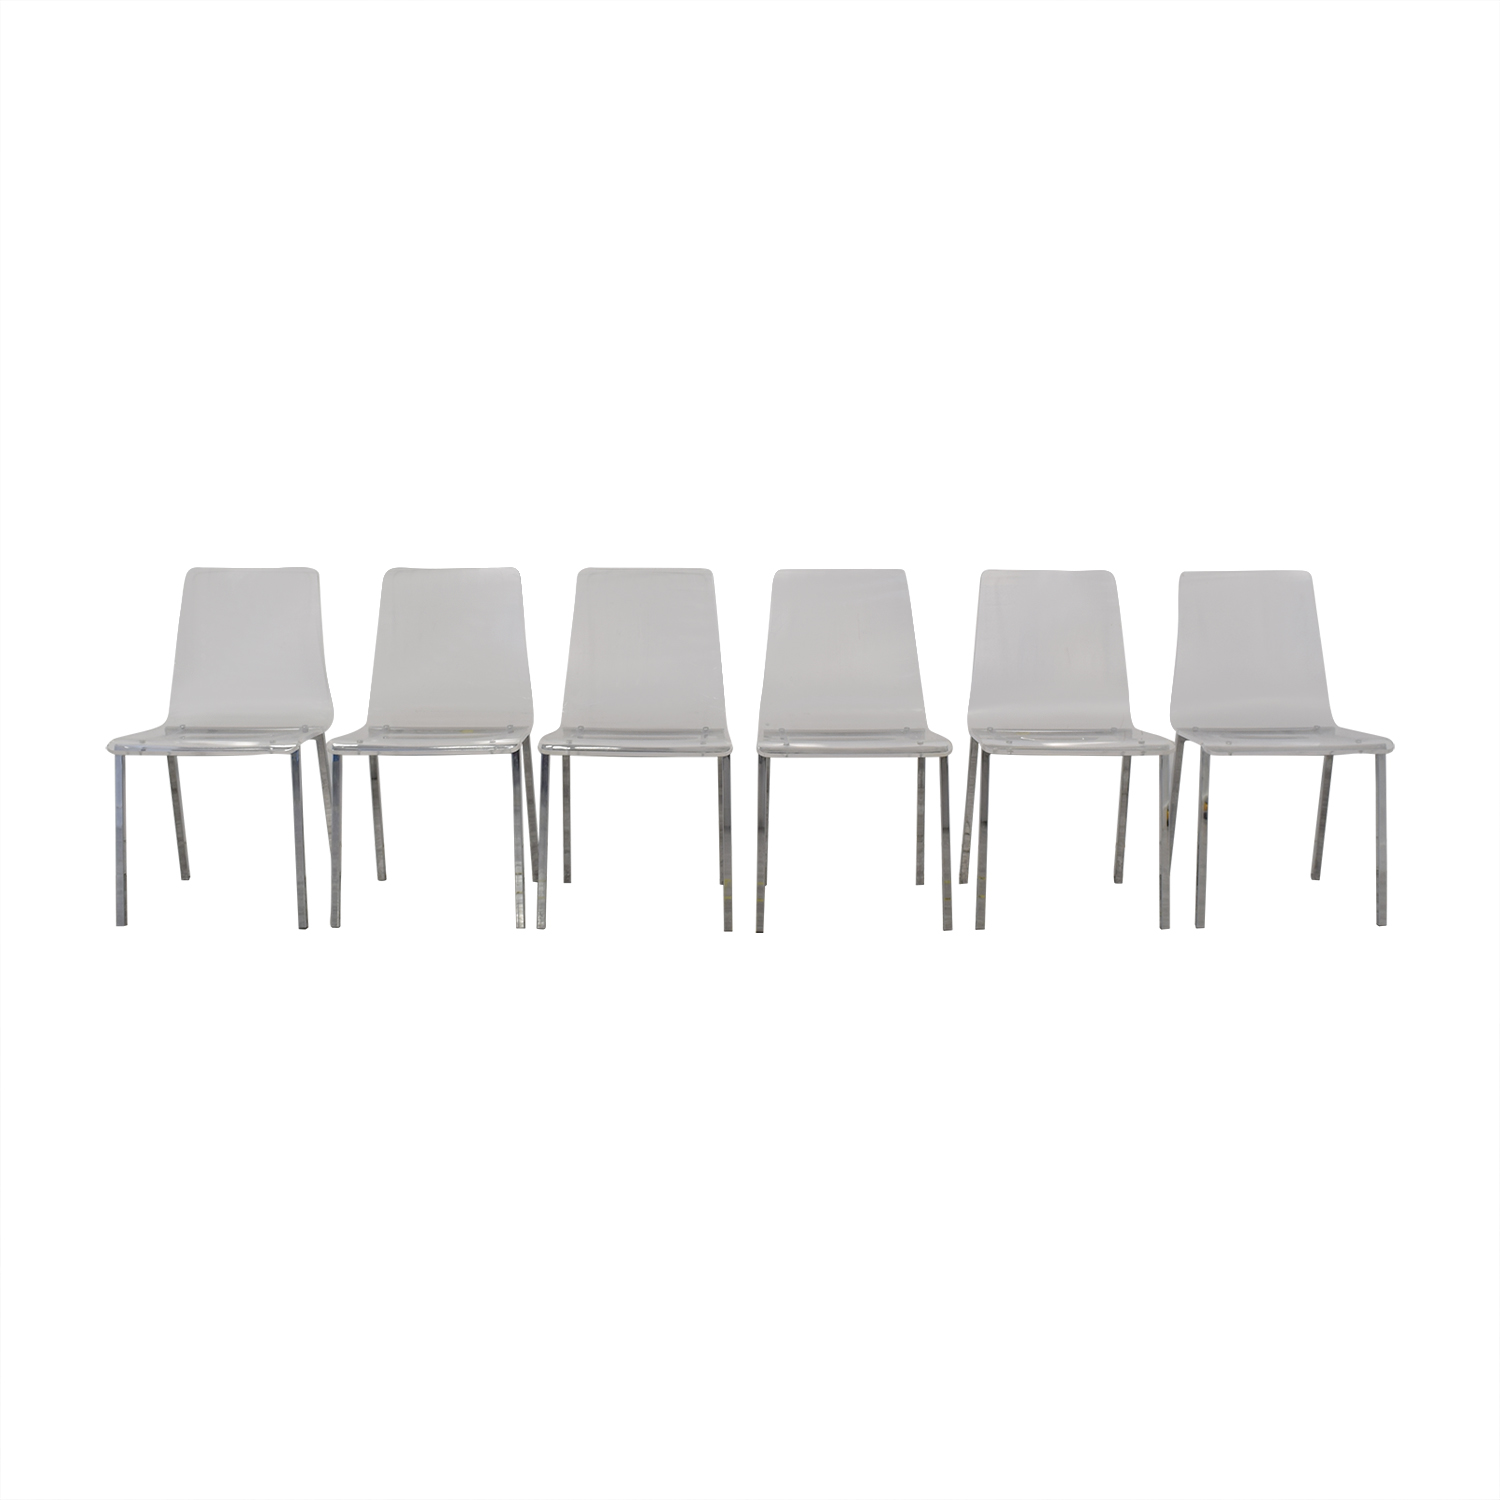 CB2 CB2 Acrylic Vapor Dining Chairs on sale